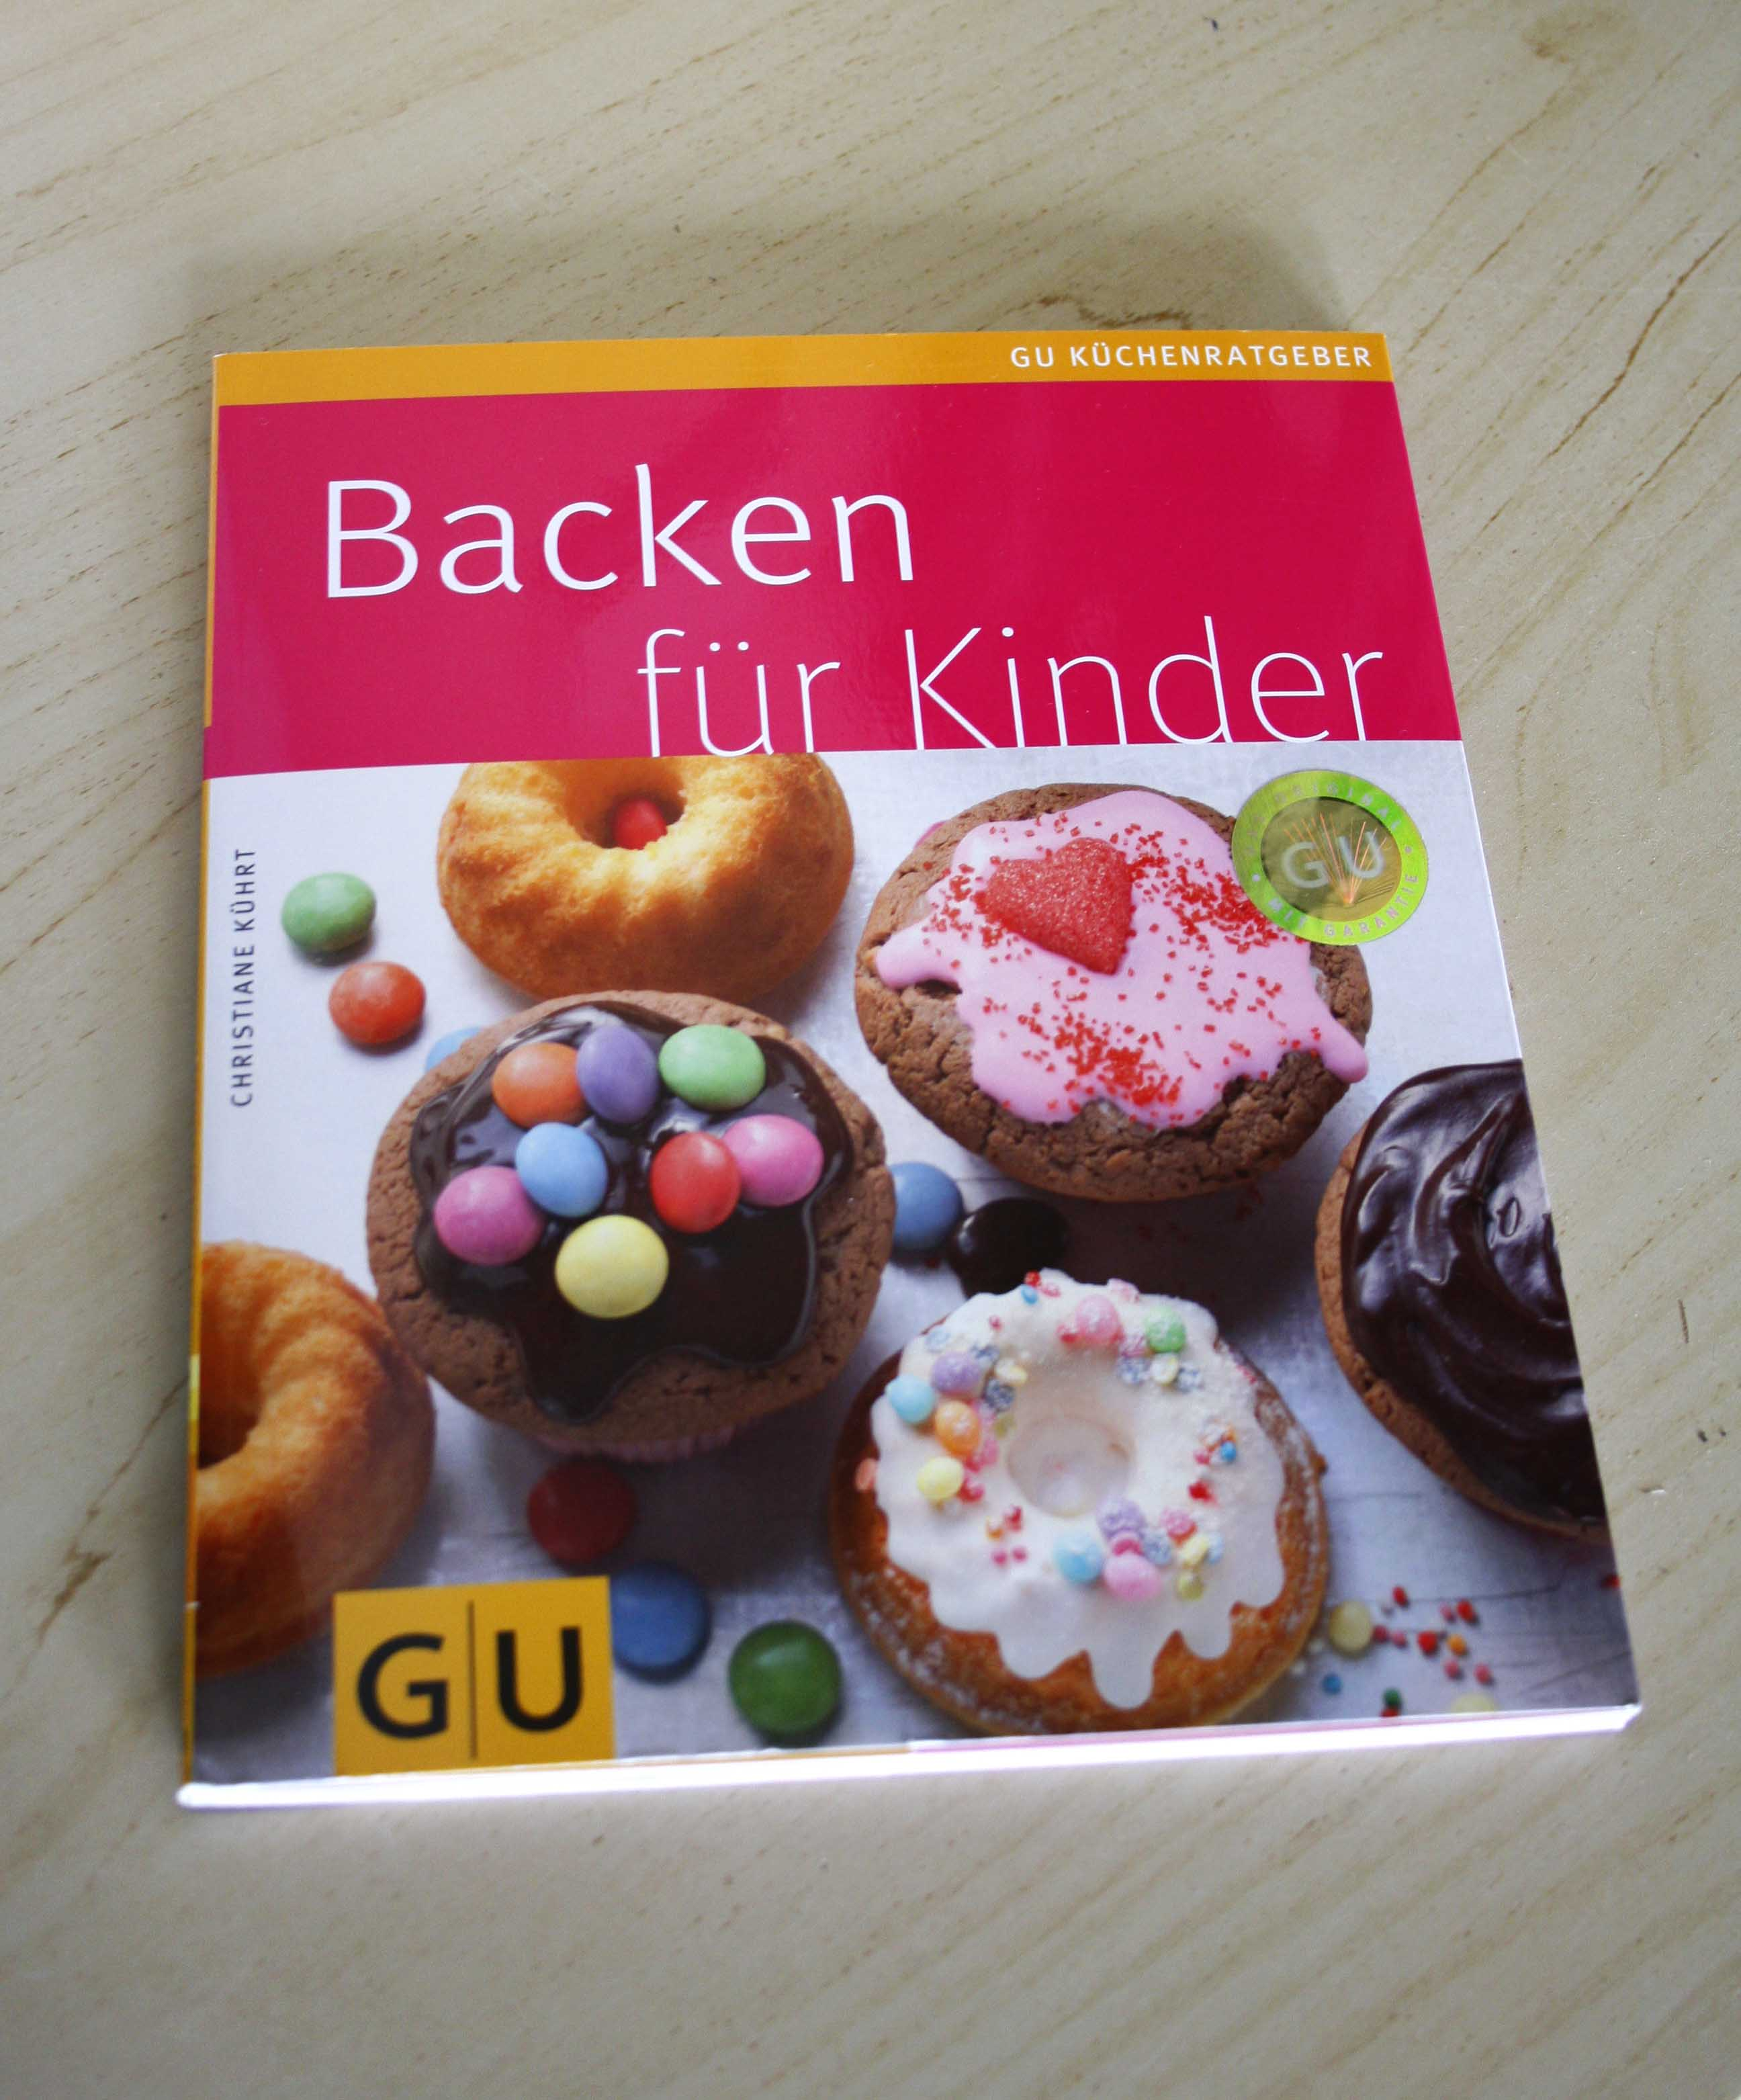 http://babyrockmyday.com/backen-fur-kinder/